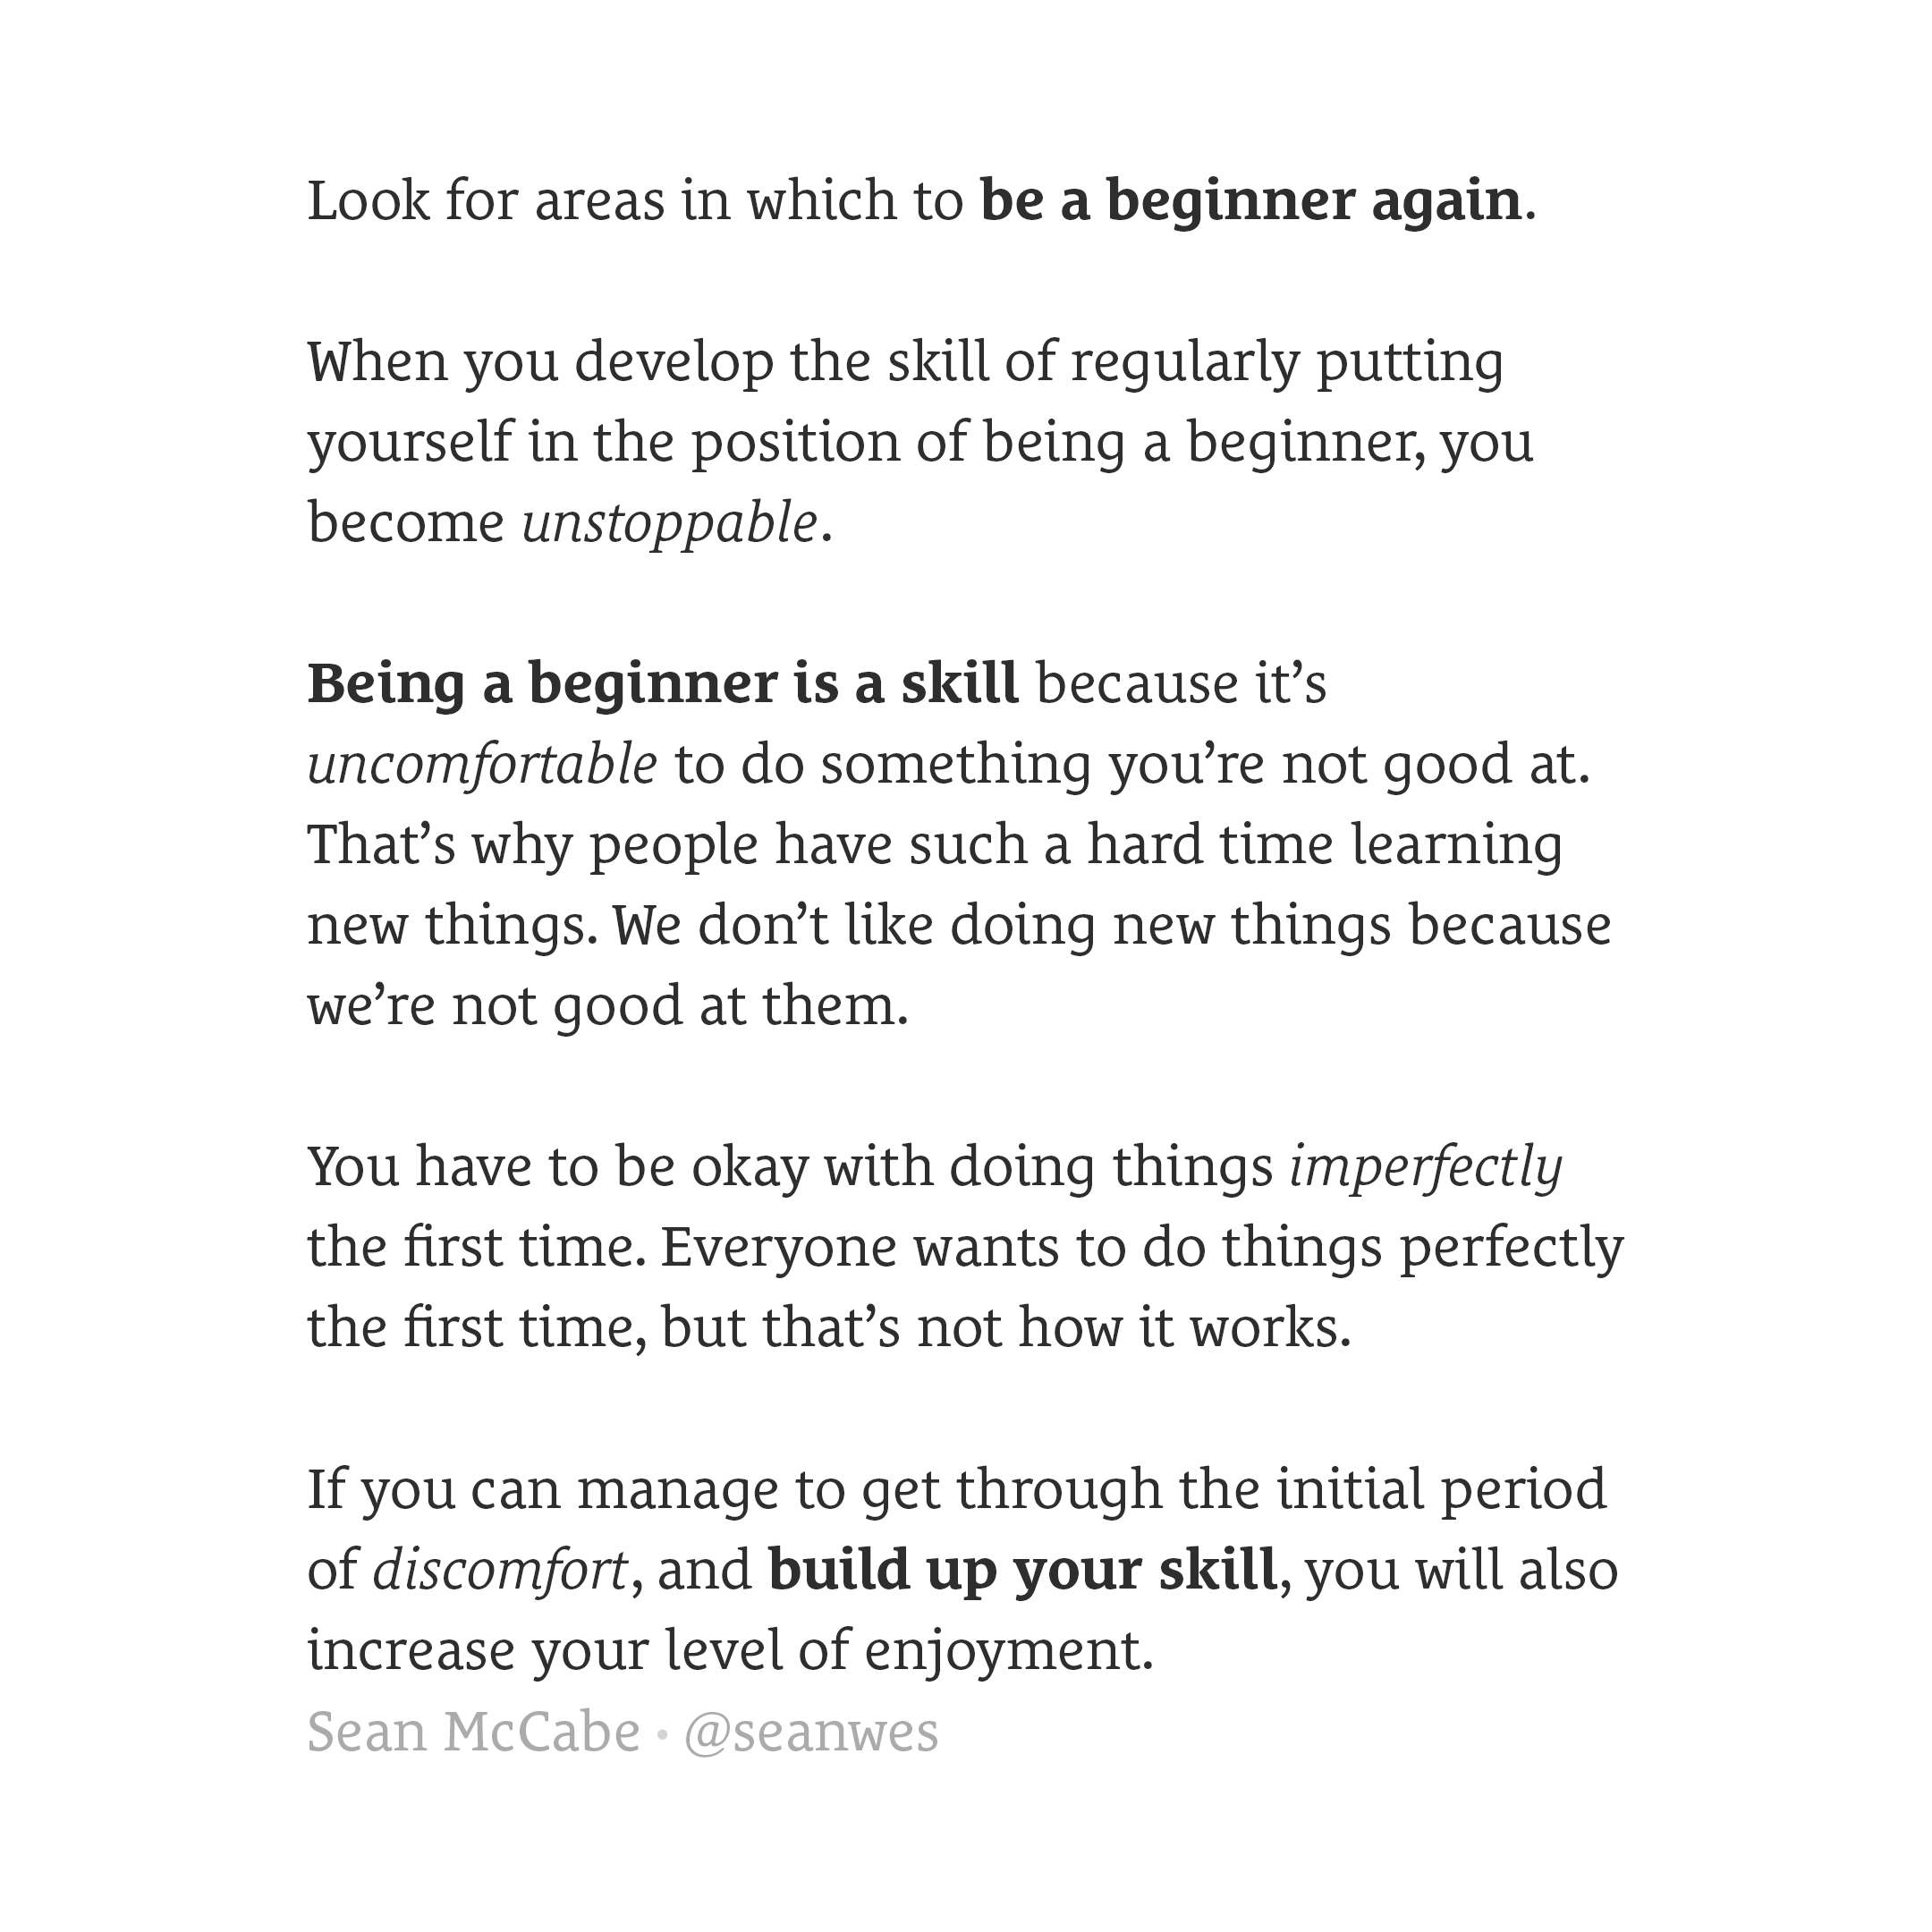 Be a beginner again.